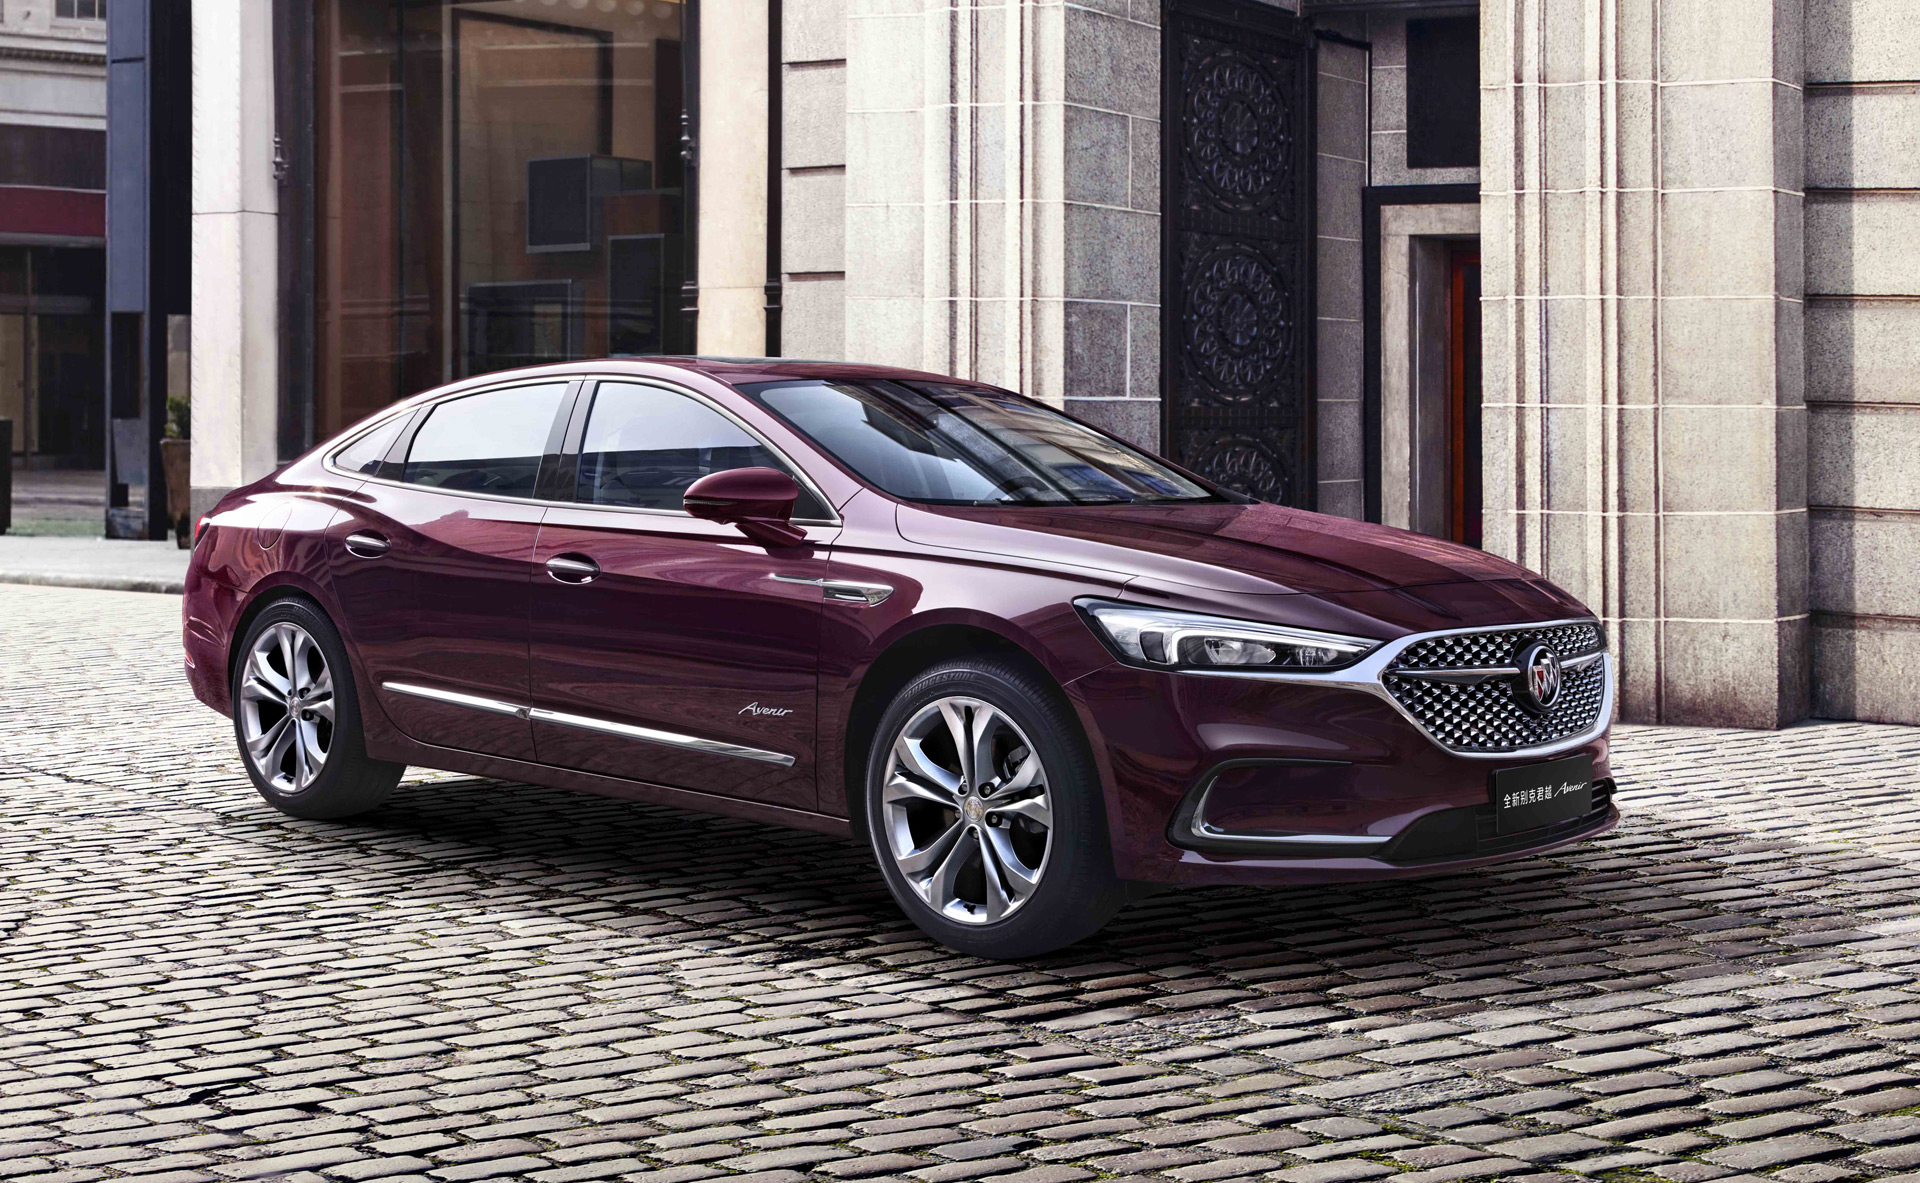 2020 Buick Lacrosse Made Handsome Just As It's Dropped In Us When Will The 2022 Buick Lacrosse Be Released